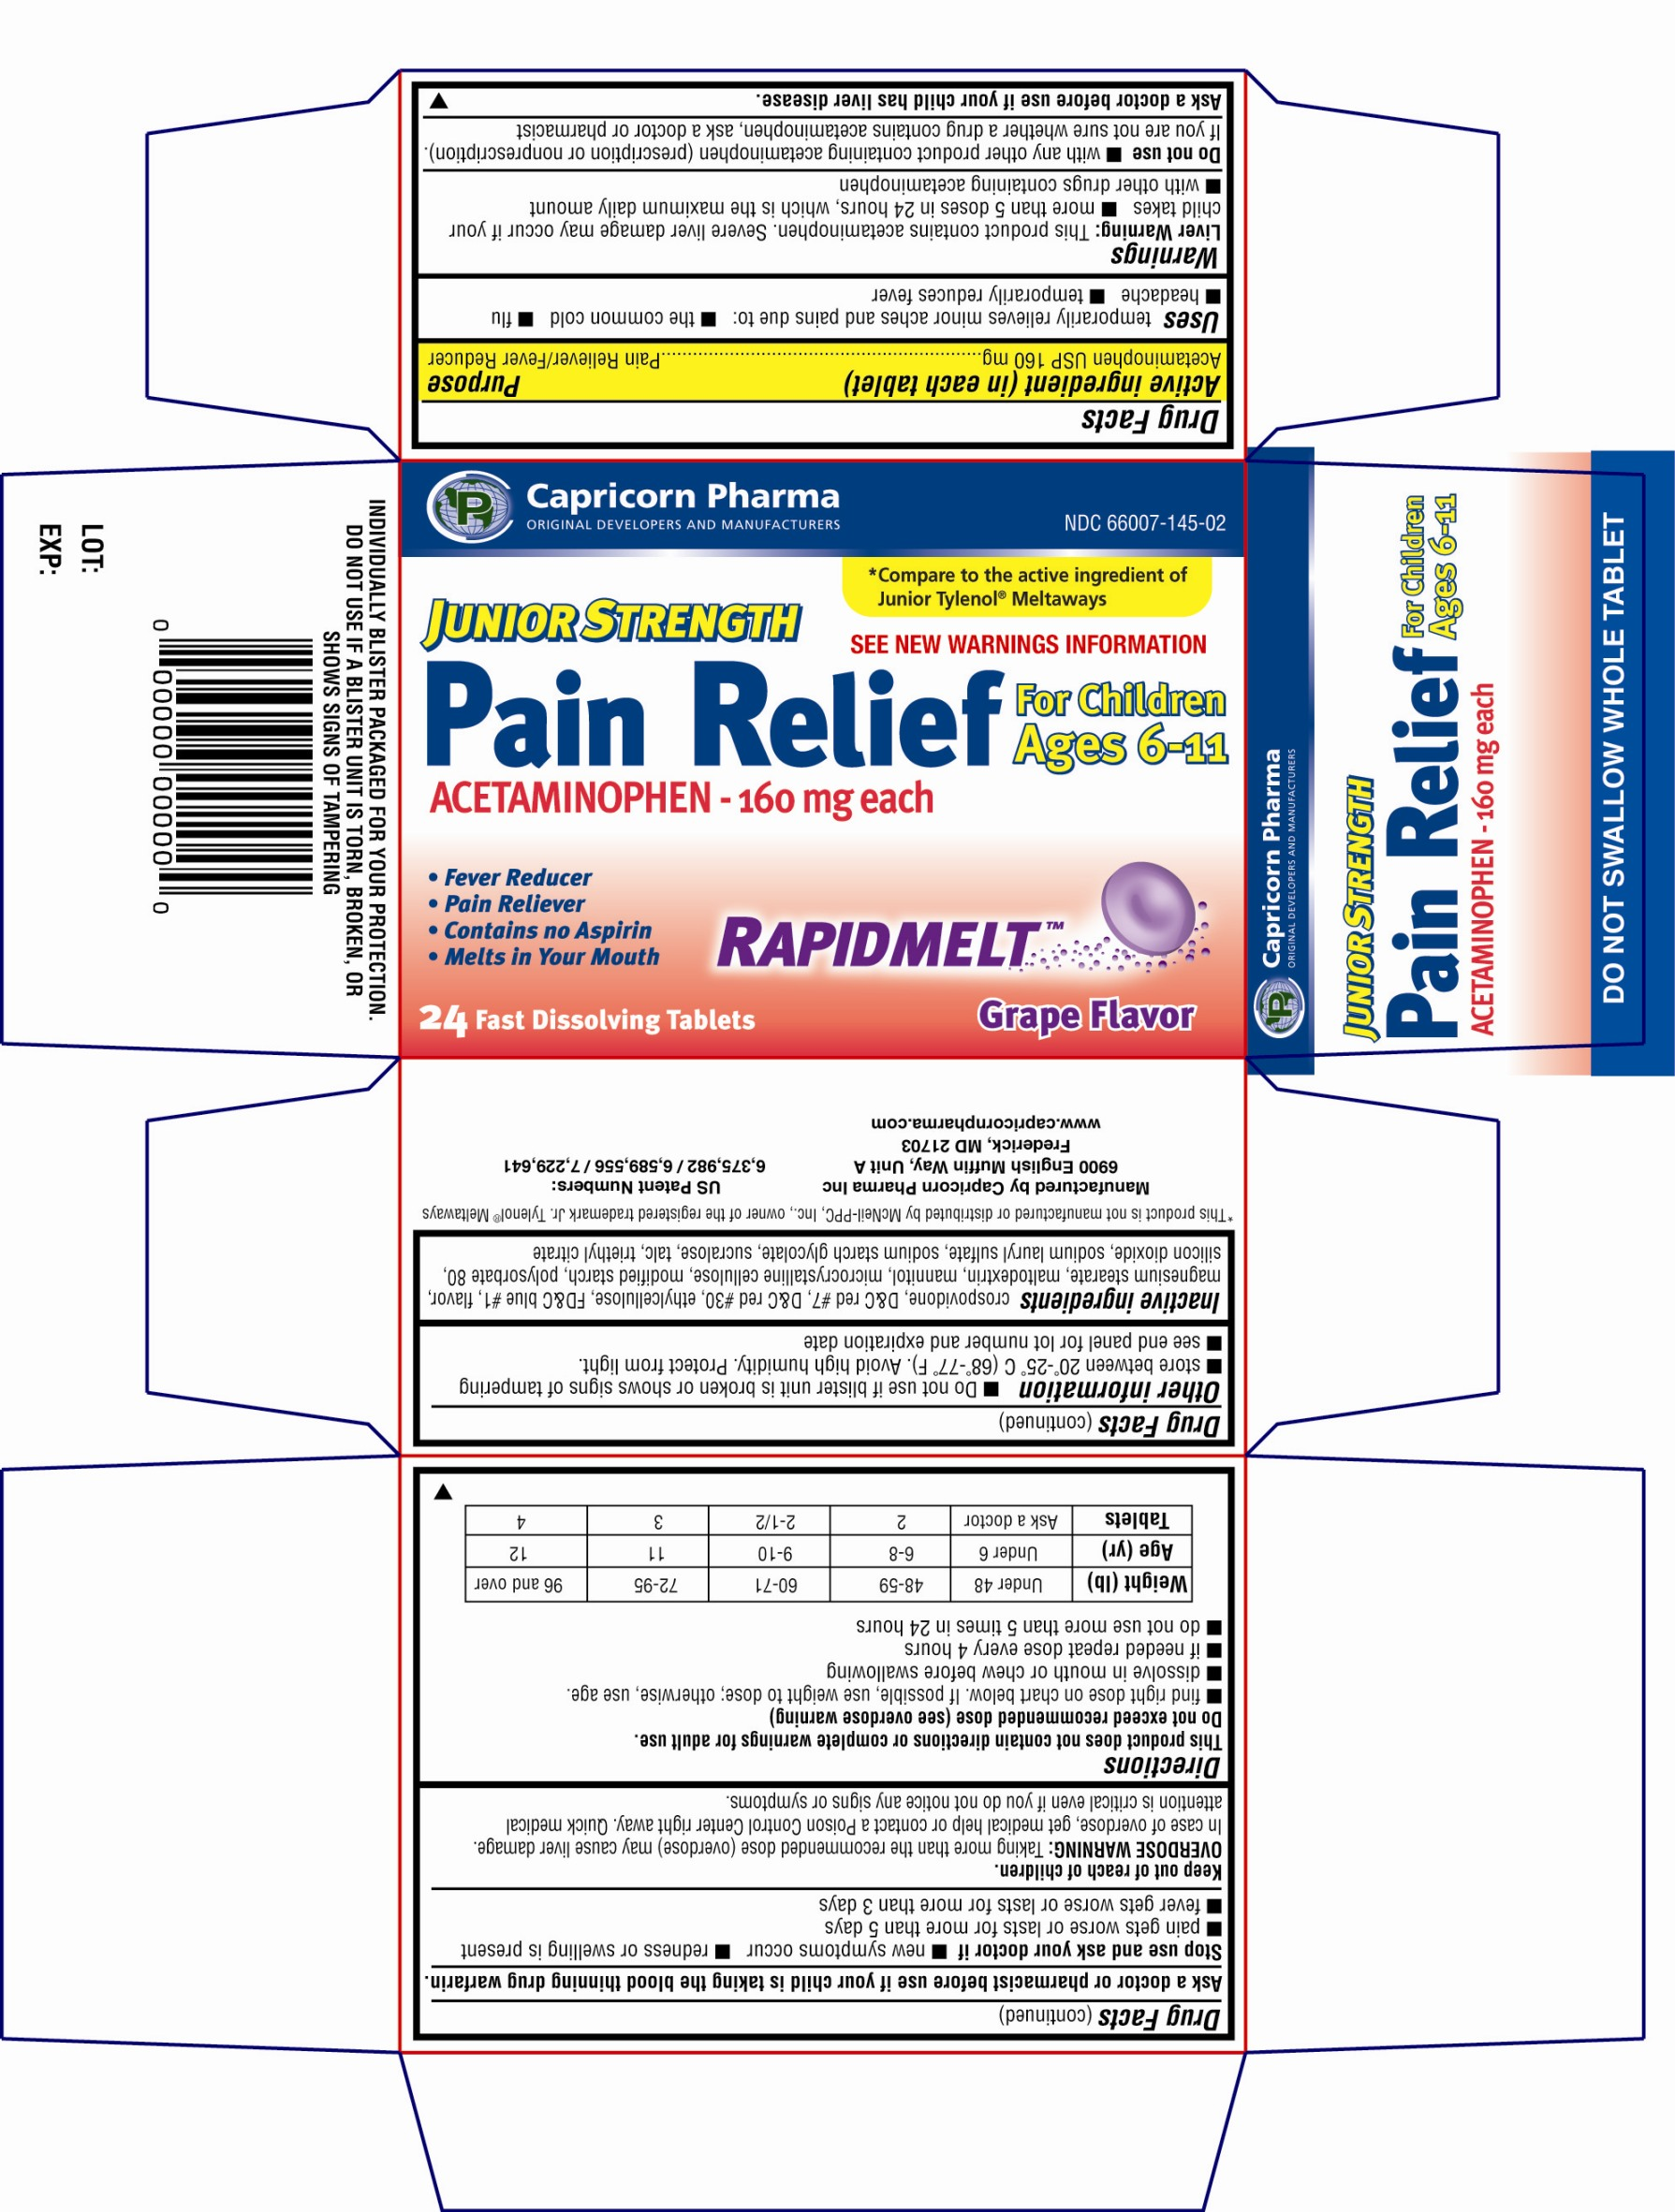 Junior strength Pain Relief Acetaminophen 160mg